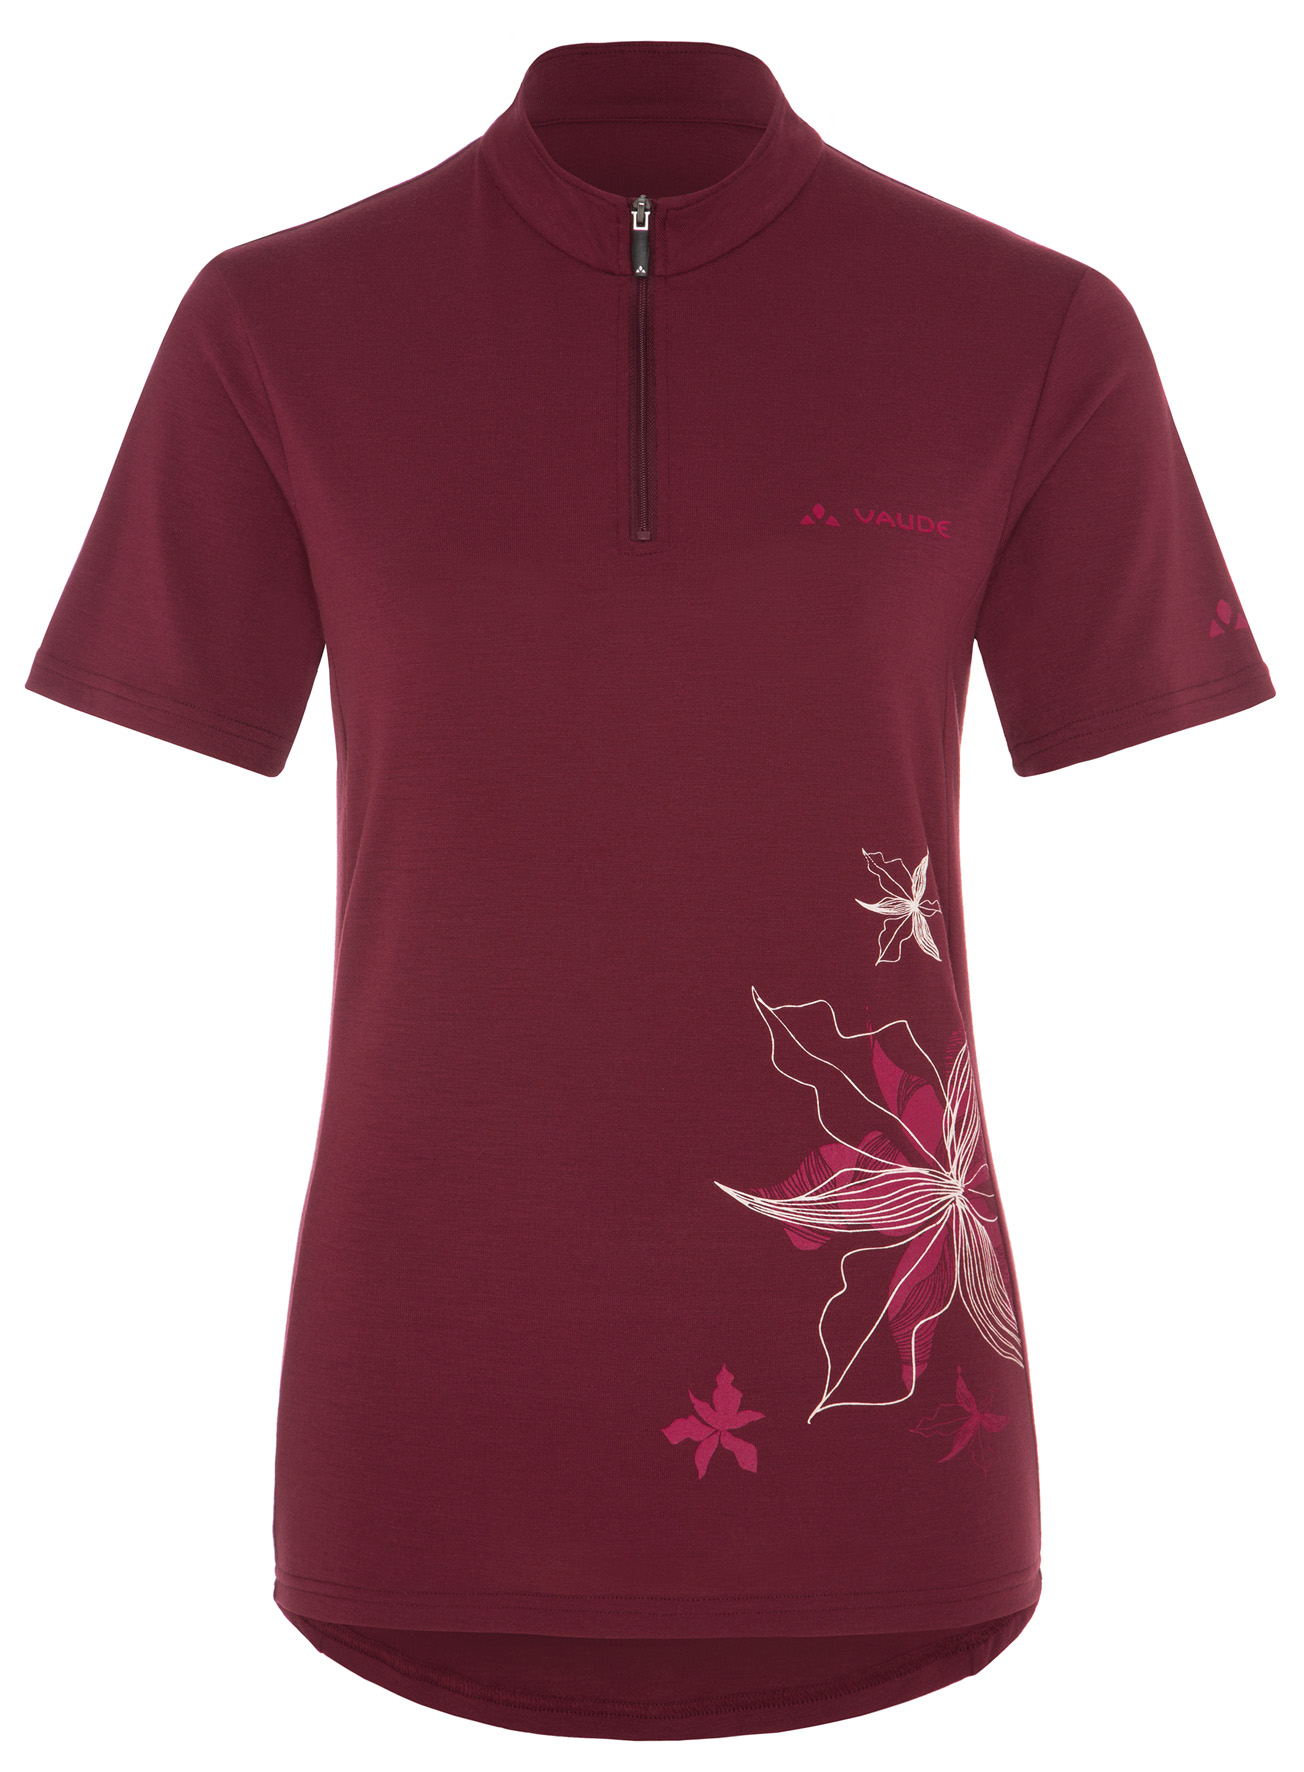 Women´s Sentiero Shirt claret red Größe 36 - schneider-sports